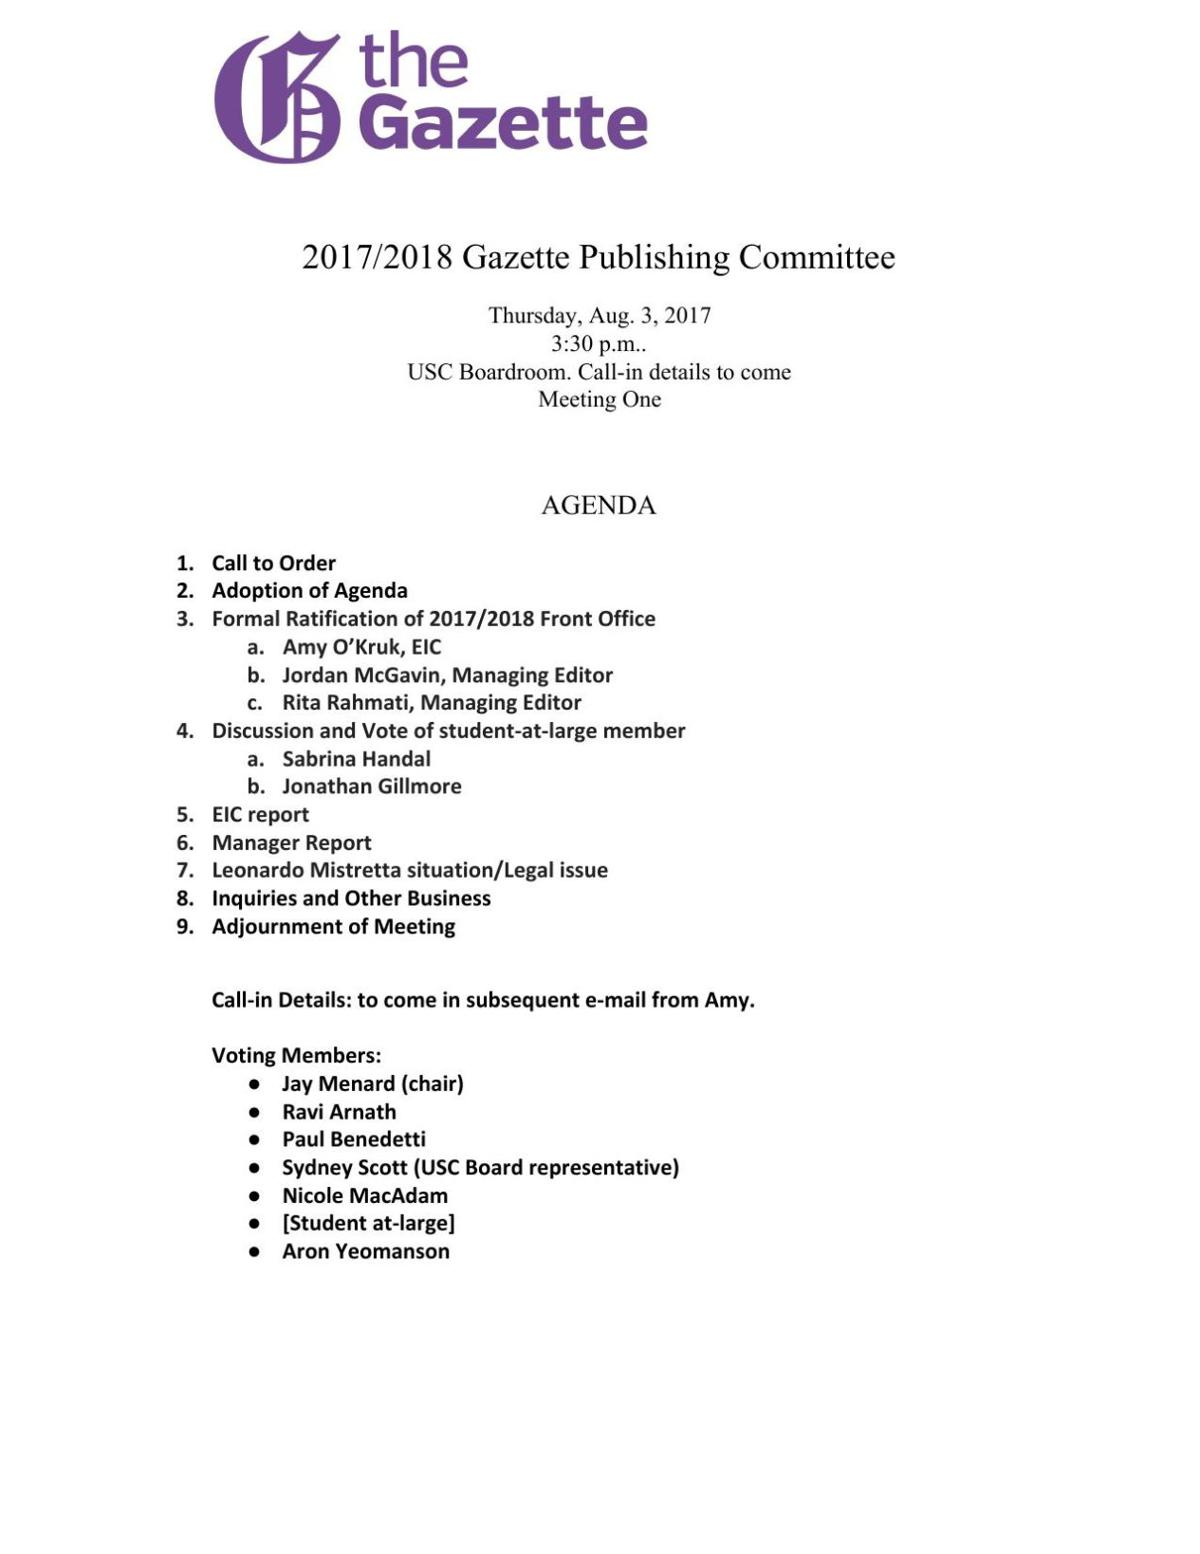 Publications Committee Agenda July 2017